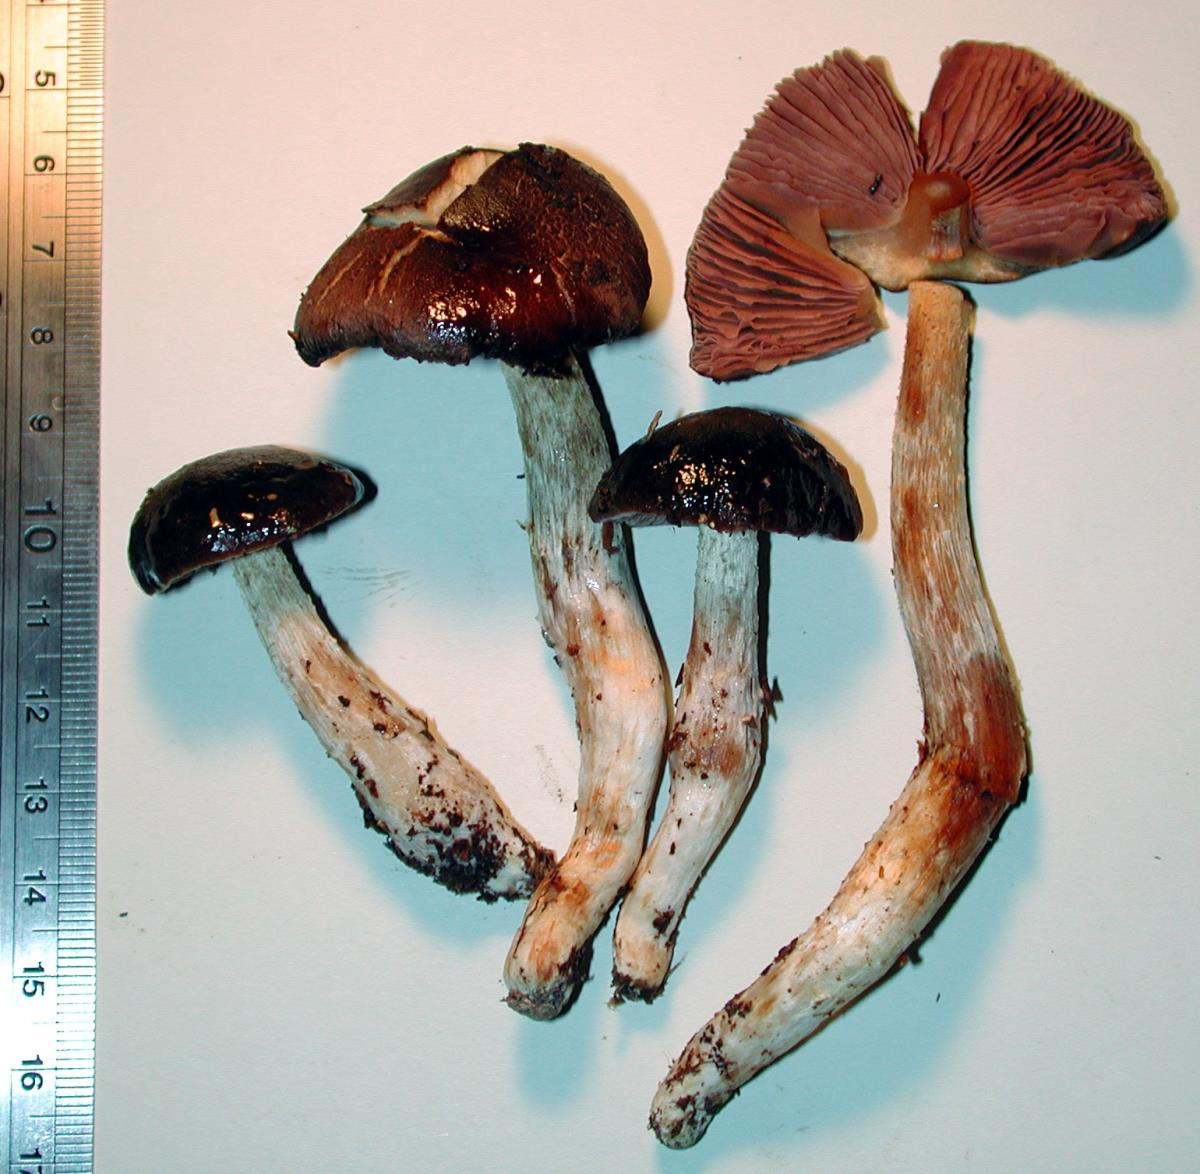 Image of Cortinarius picoides